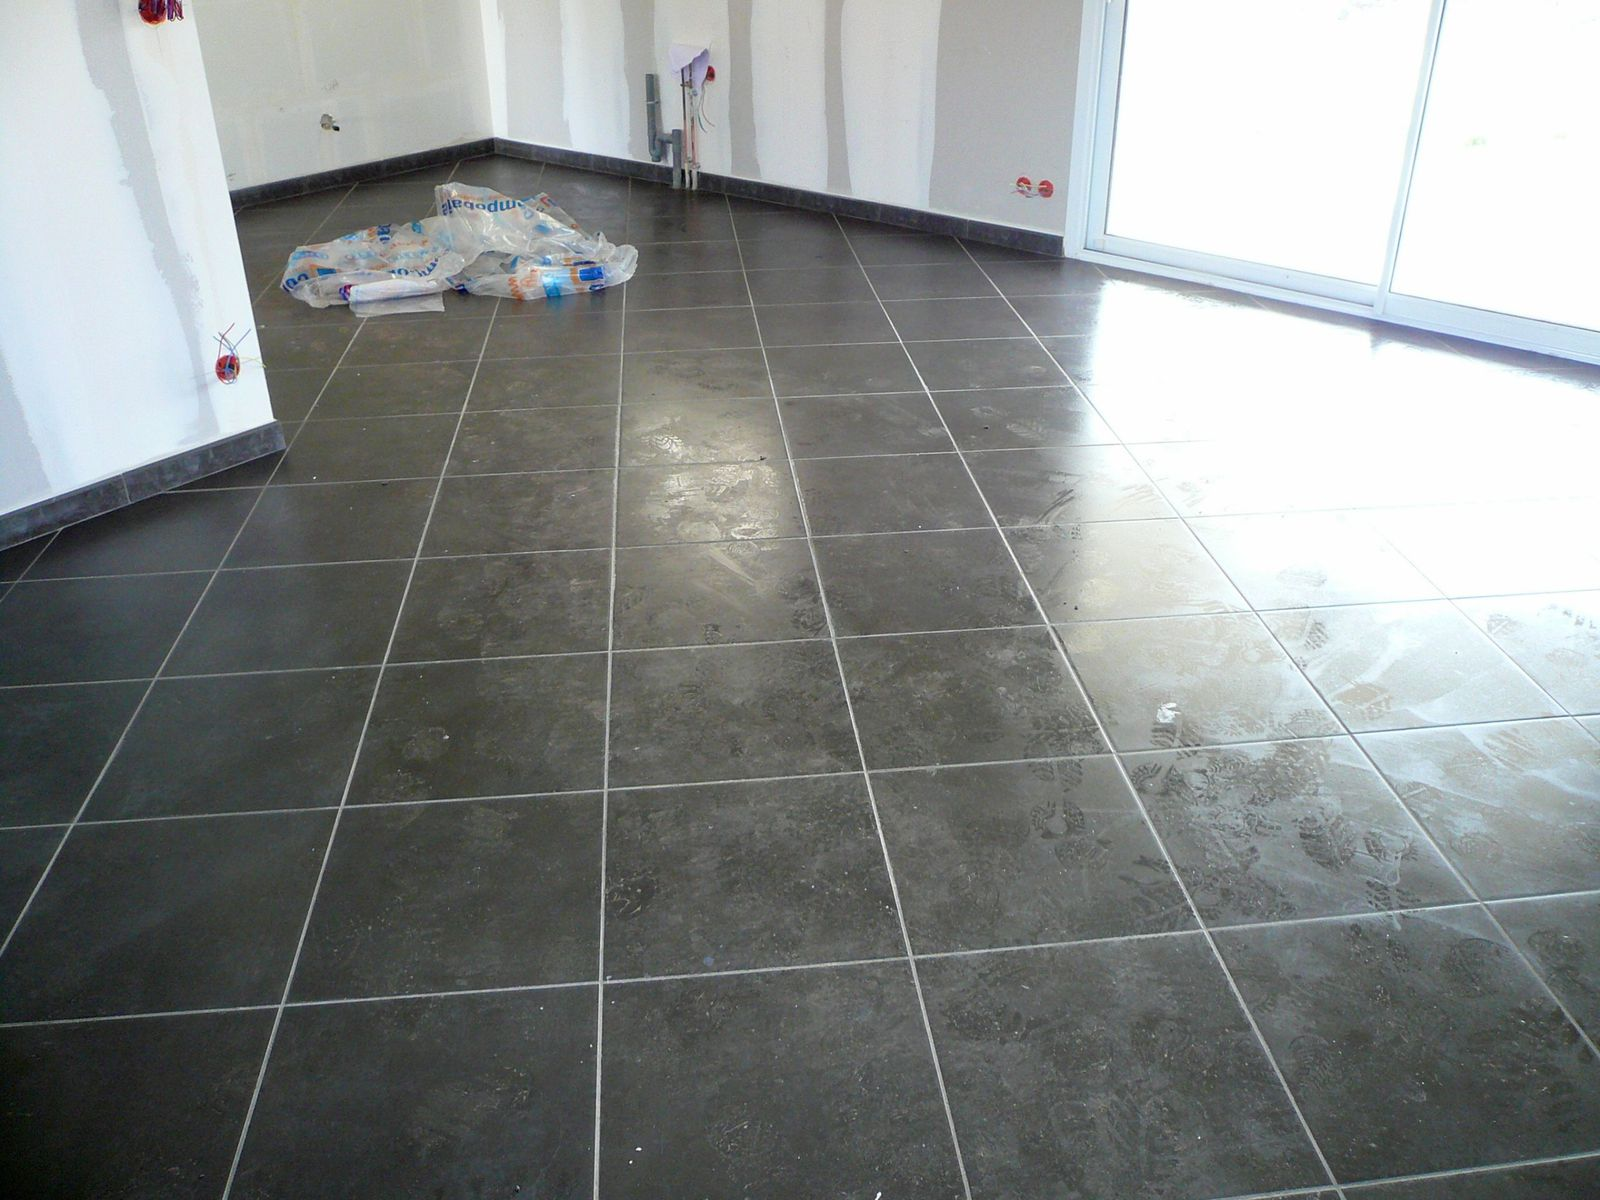 Poser du carrelage 80x80 for Retrouver un carrelage